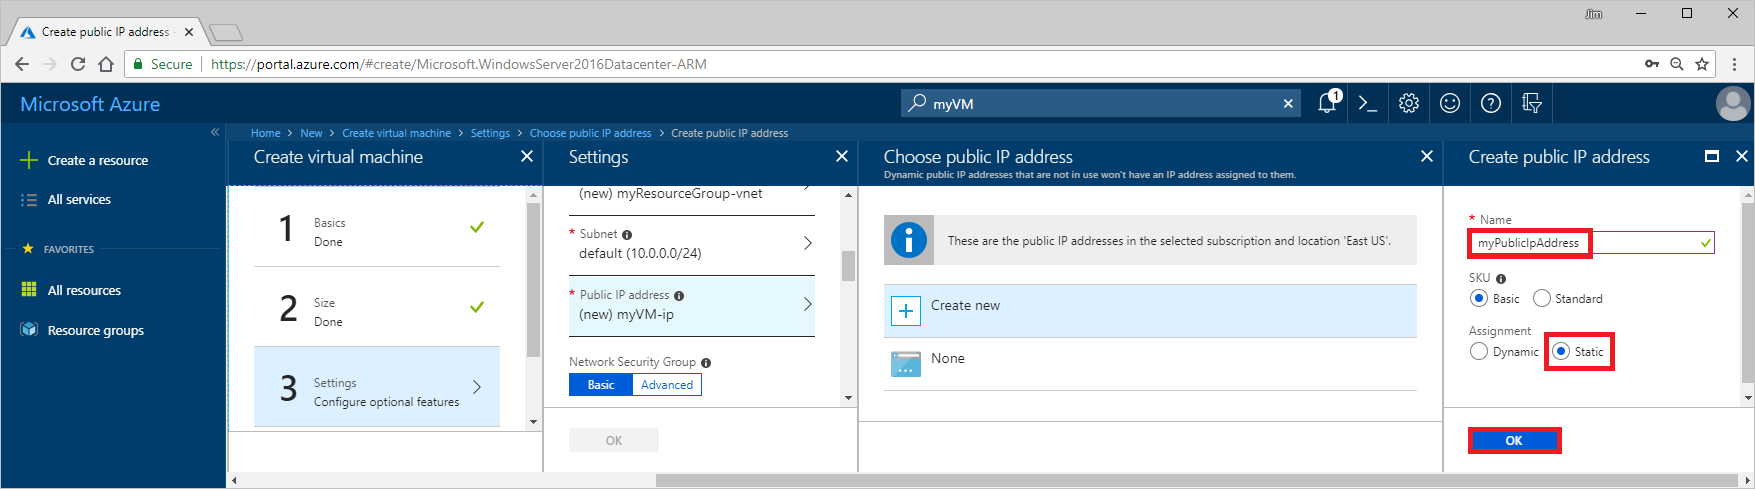 Create a VM with a static public IP address - Azure portal | Microsoft Docs